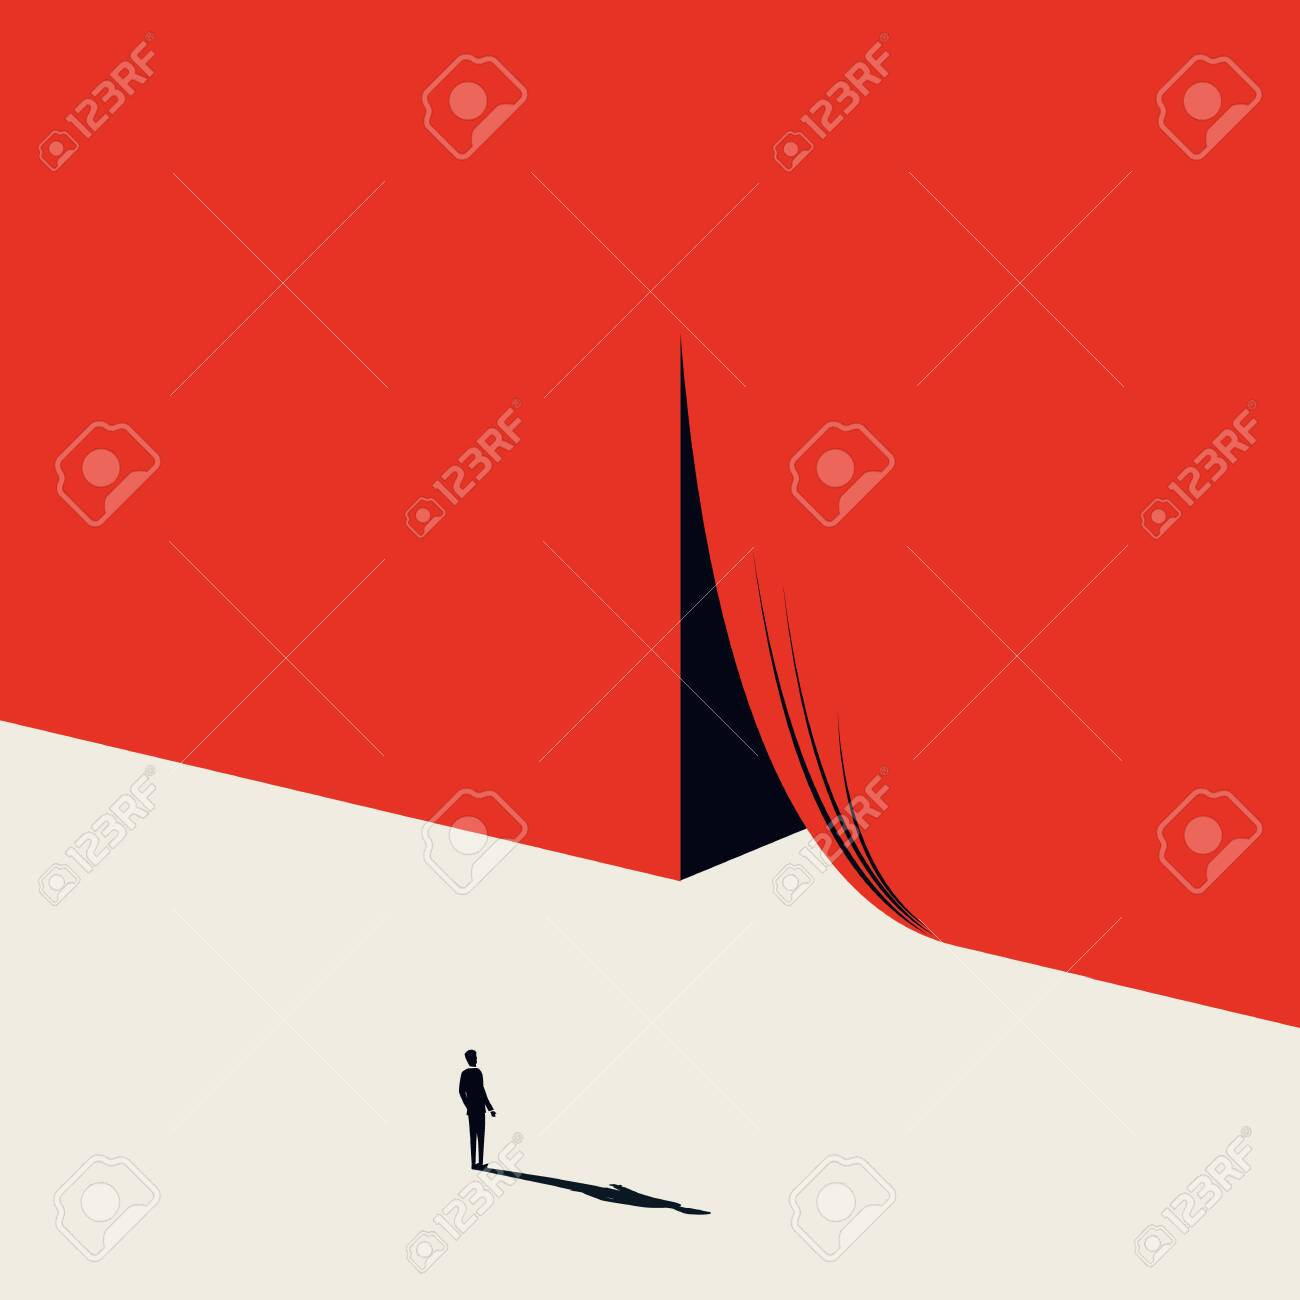 Business opportunity and challenge vector concept with businessman and curtains opening. Minimalist artistic style. Symbol of achievement, motivation, success, new job, beginning. Eps10 illustration. - 123965268